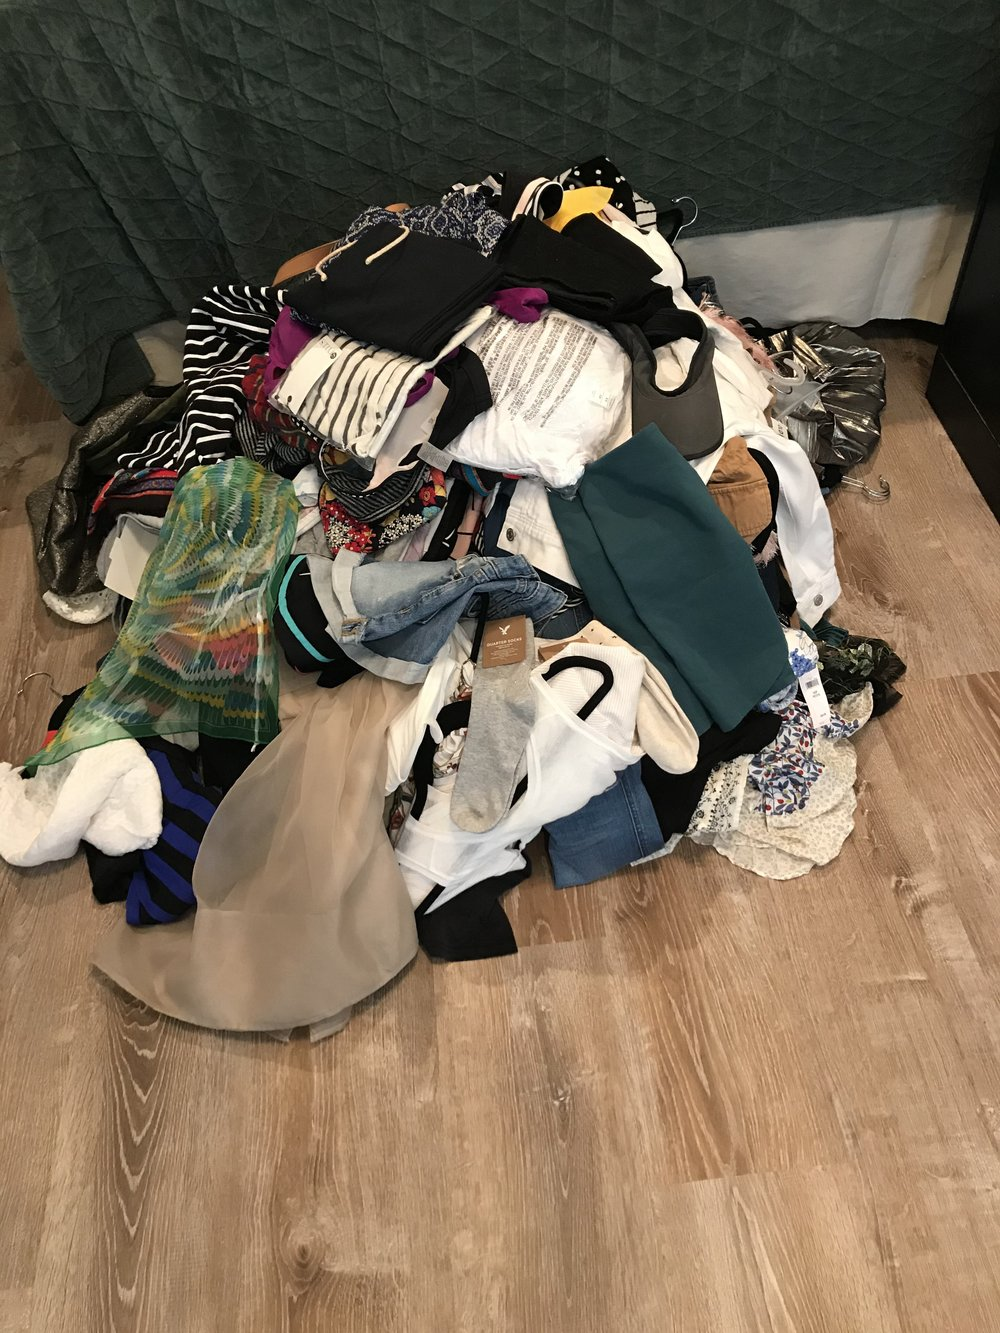 tidying-up-pile-2